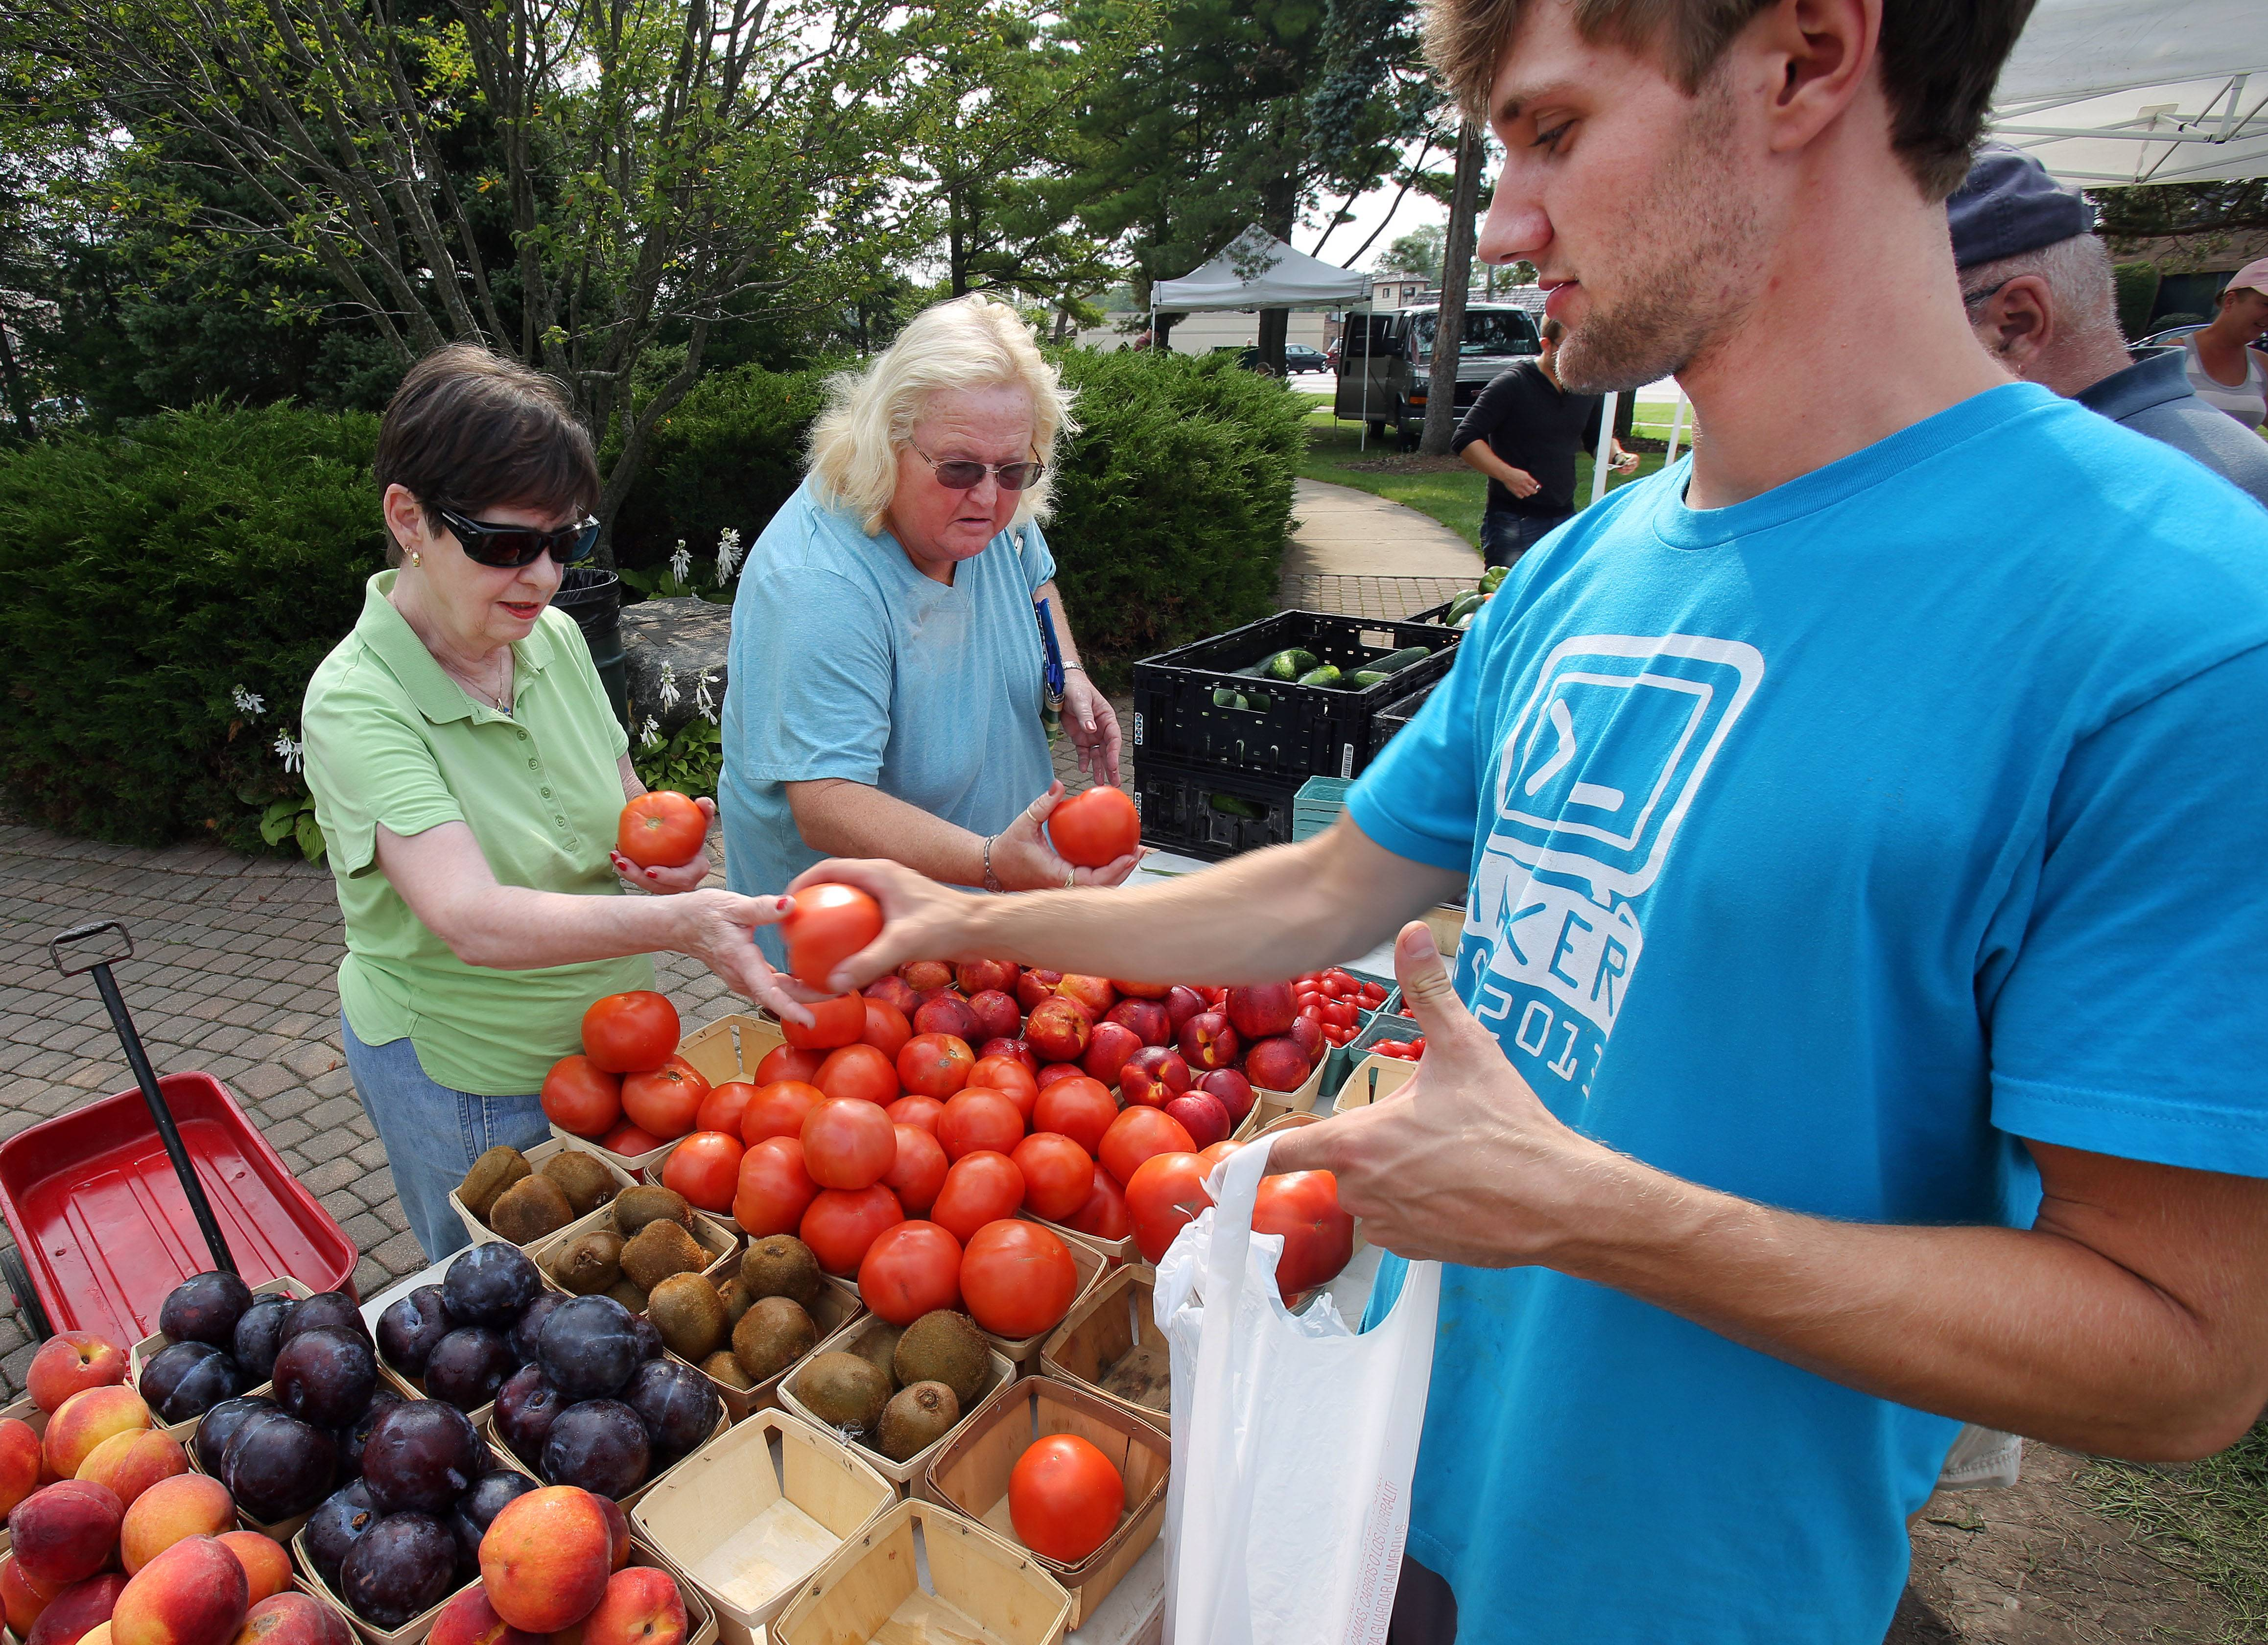 Susan McBride, left, of Lindenhurst, and Denise Christianson, of Waukegan, pick out tomatoes with help from Jared Jones, of Jerry Smith Pumpkin Farm in Kenosha, Wis., during the Gurnee farmers market at Esper Petersen Park Friday.